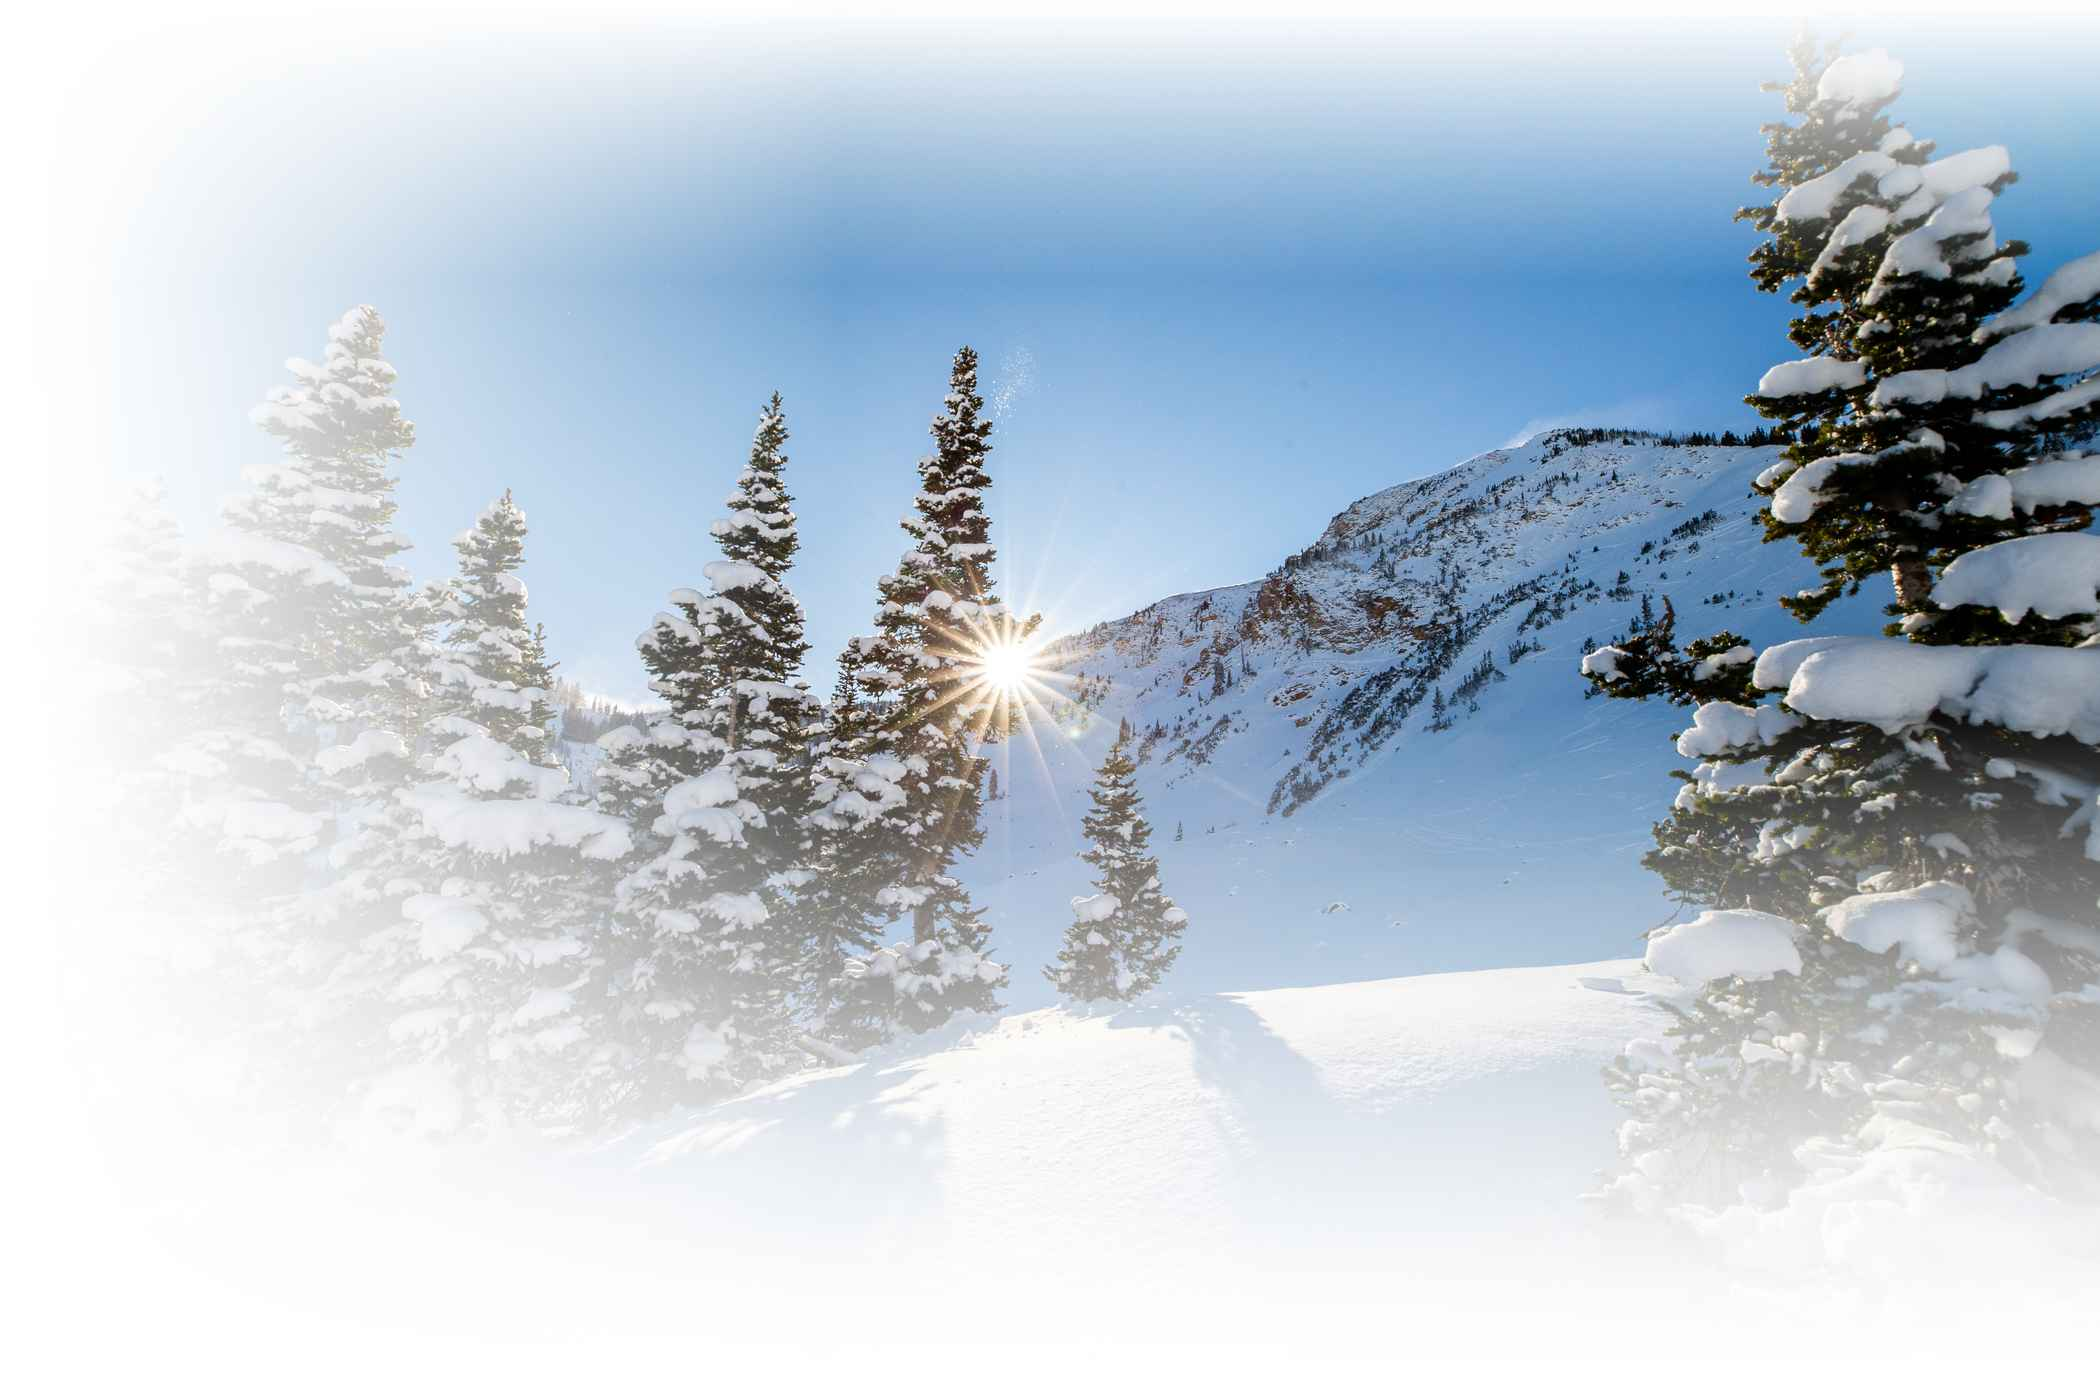 Snowy trees on a sunny winter day at Alta Ski Area